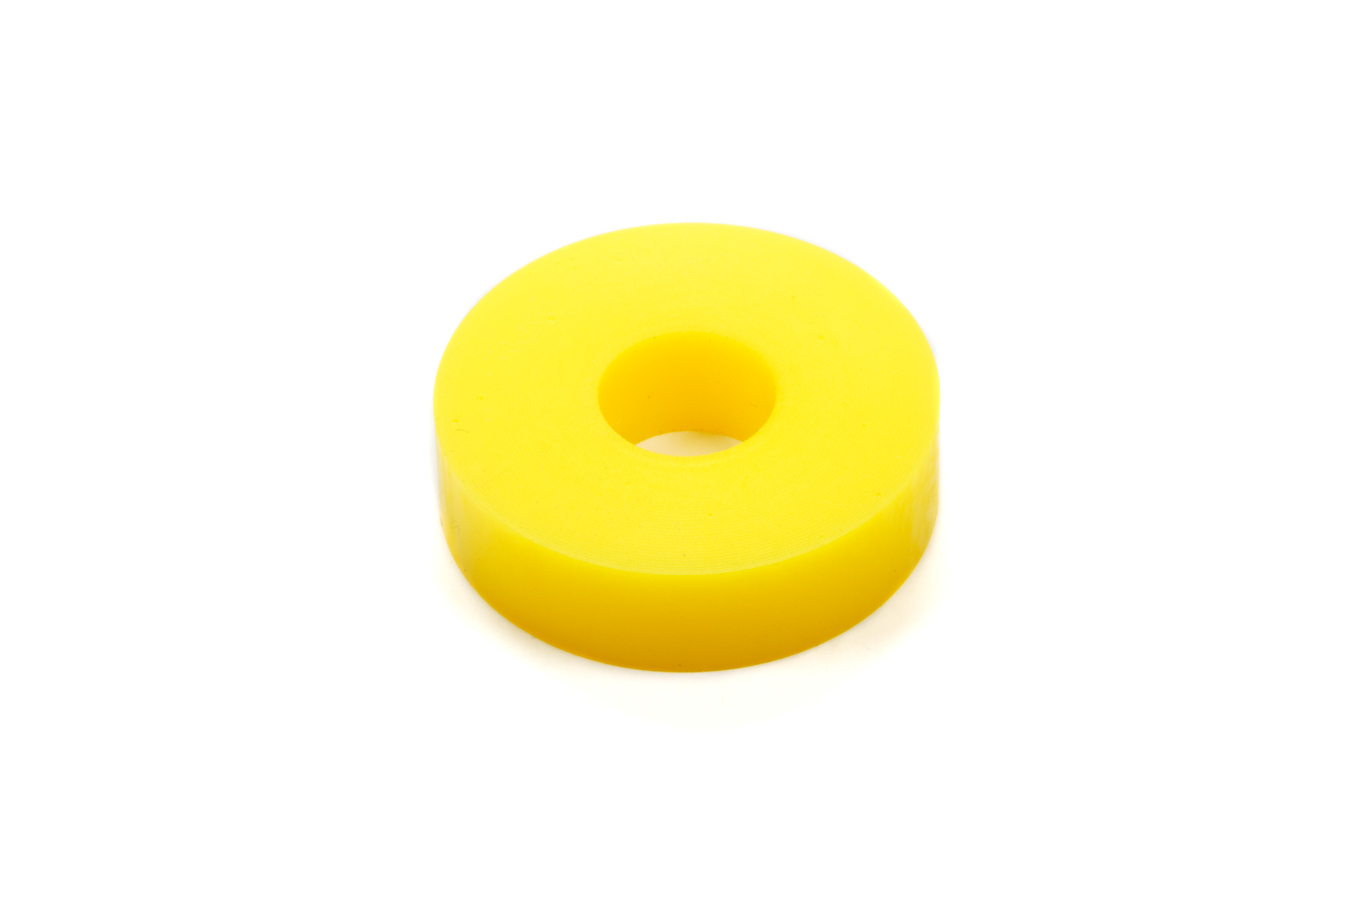 RE Suspension RE-BR-5153-180 Bump Stop Puck, Apollo, 1.875 in OD, 5/8 in ID, 1/2 in Tall, 80 Durometer, Rubber, Yellow, Each